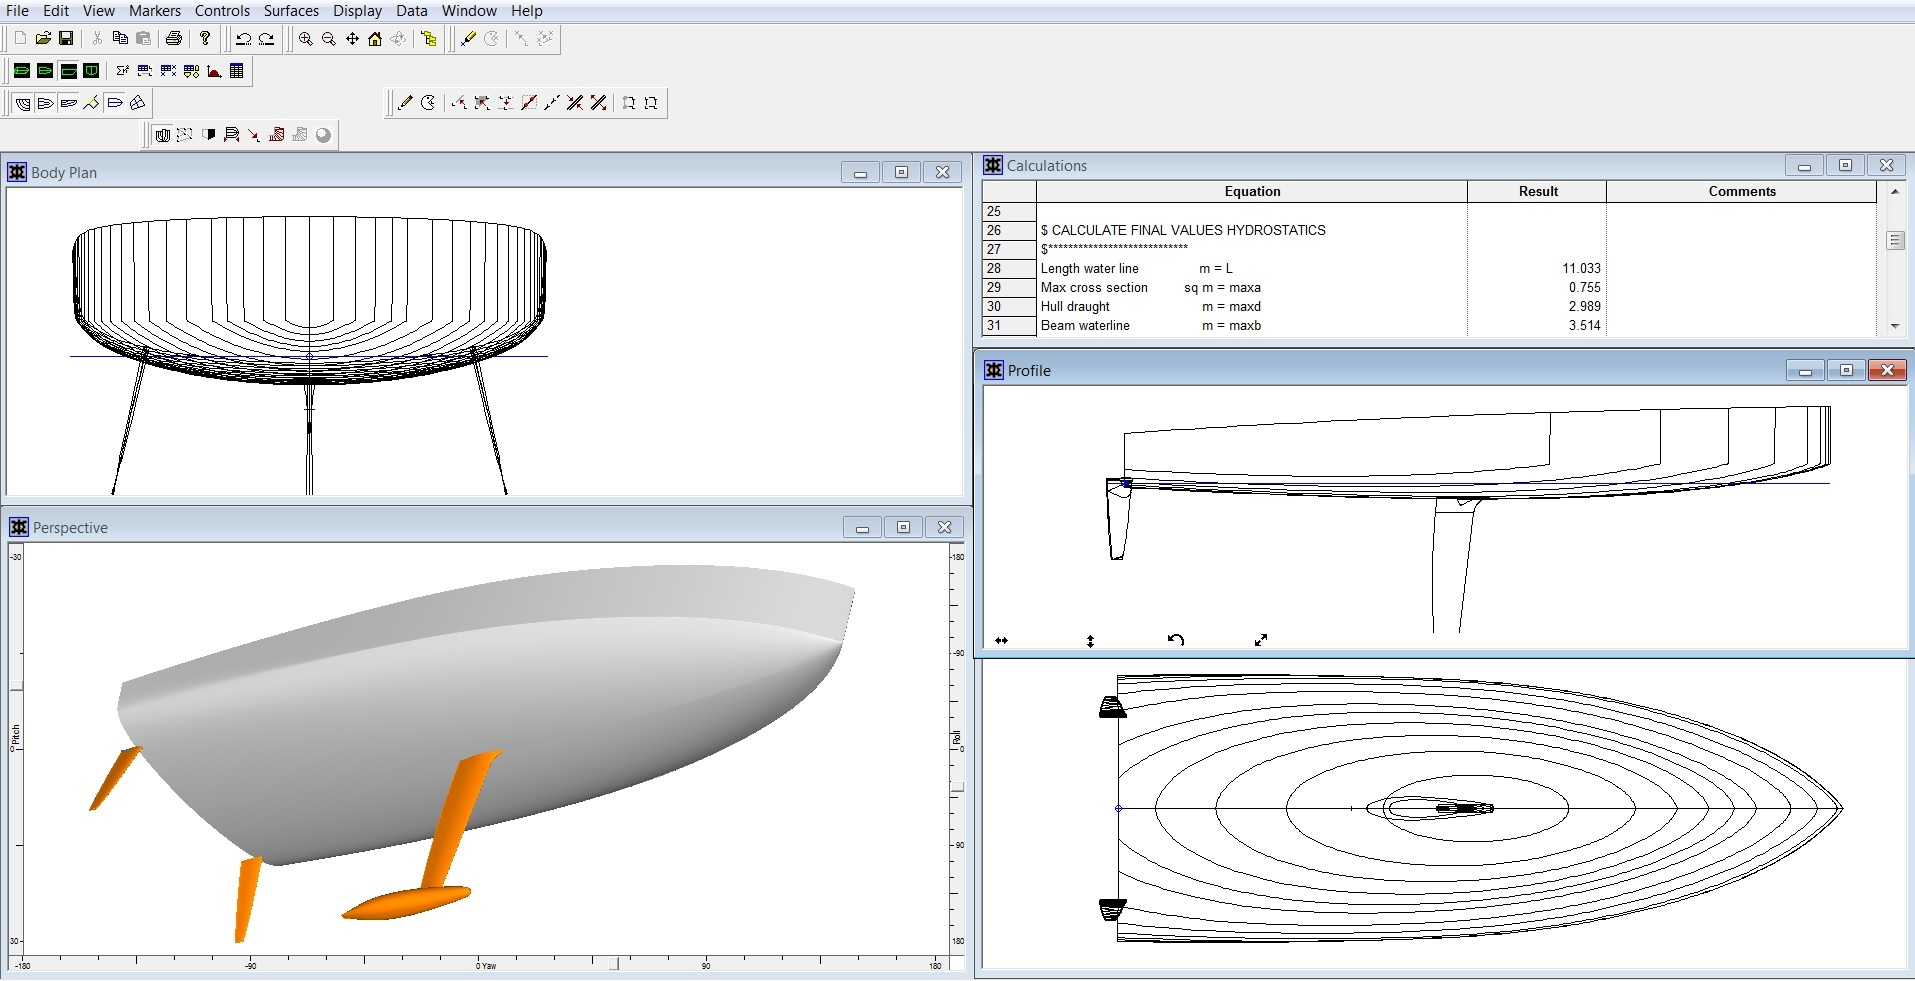 Naval architecture is the science of yacht design and sailors associate that with the development of a sailboat's hull lines. This screen shot shows basic hydrostatic calculations and the plan, profile, section and perspective view of a Class 40 with a scow bow. Naval Architects, Owen Clarke Design have been using this Maxsurf software for over thirty years to develop racing yacht hull and appendage files.